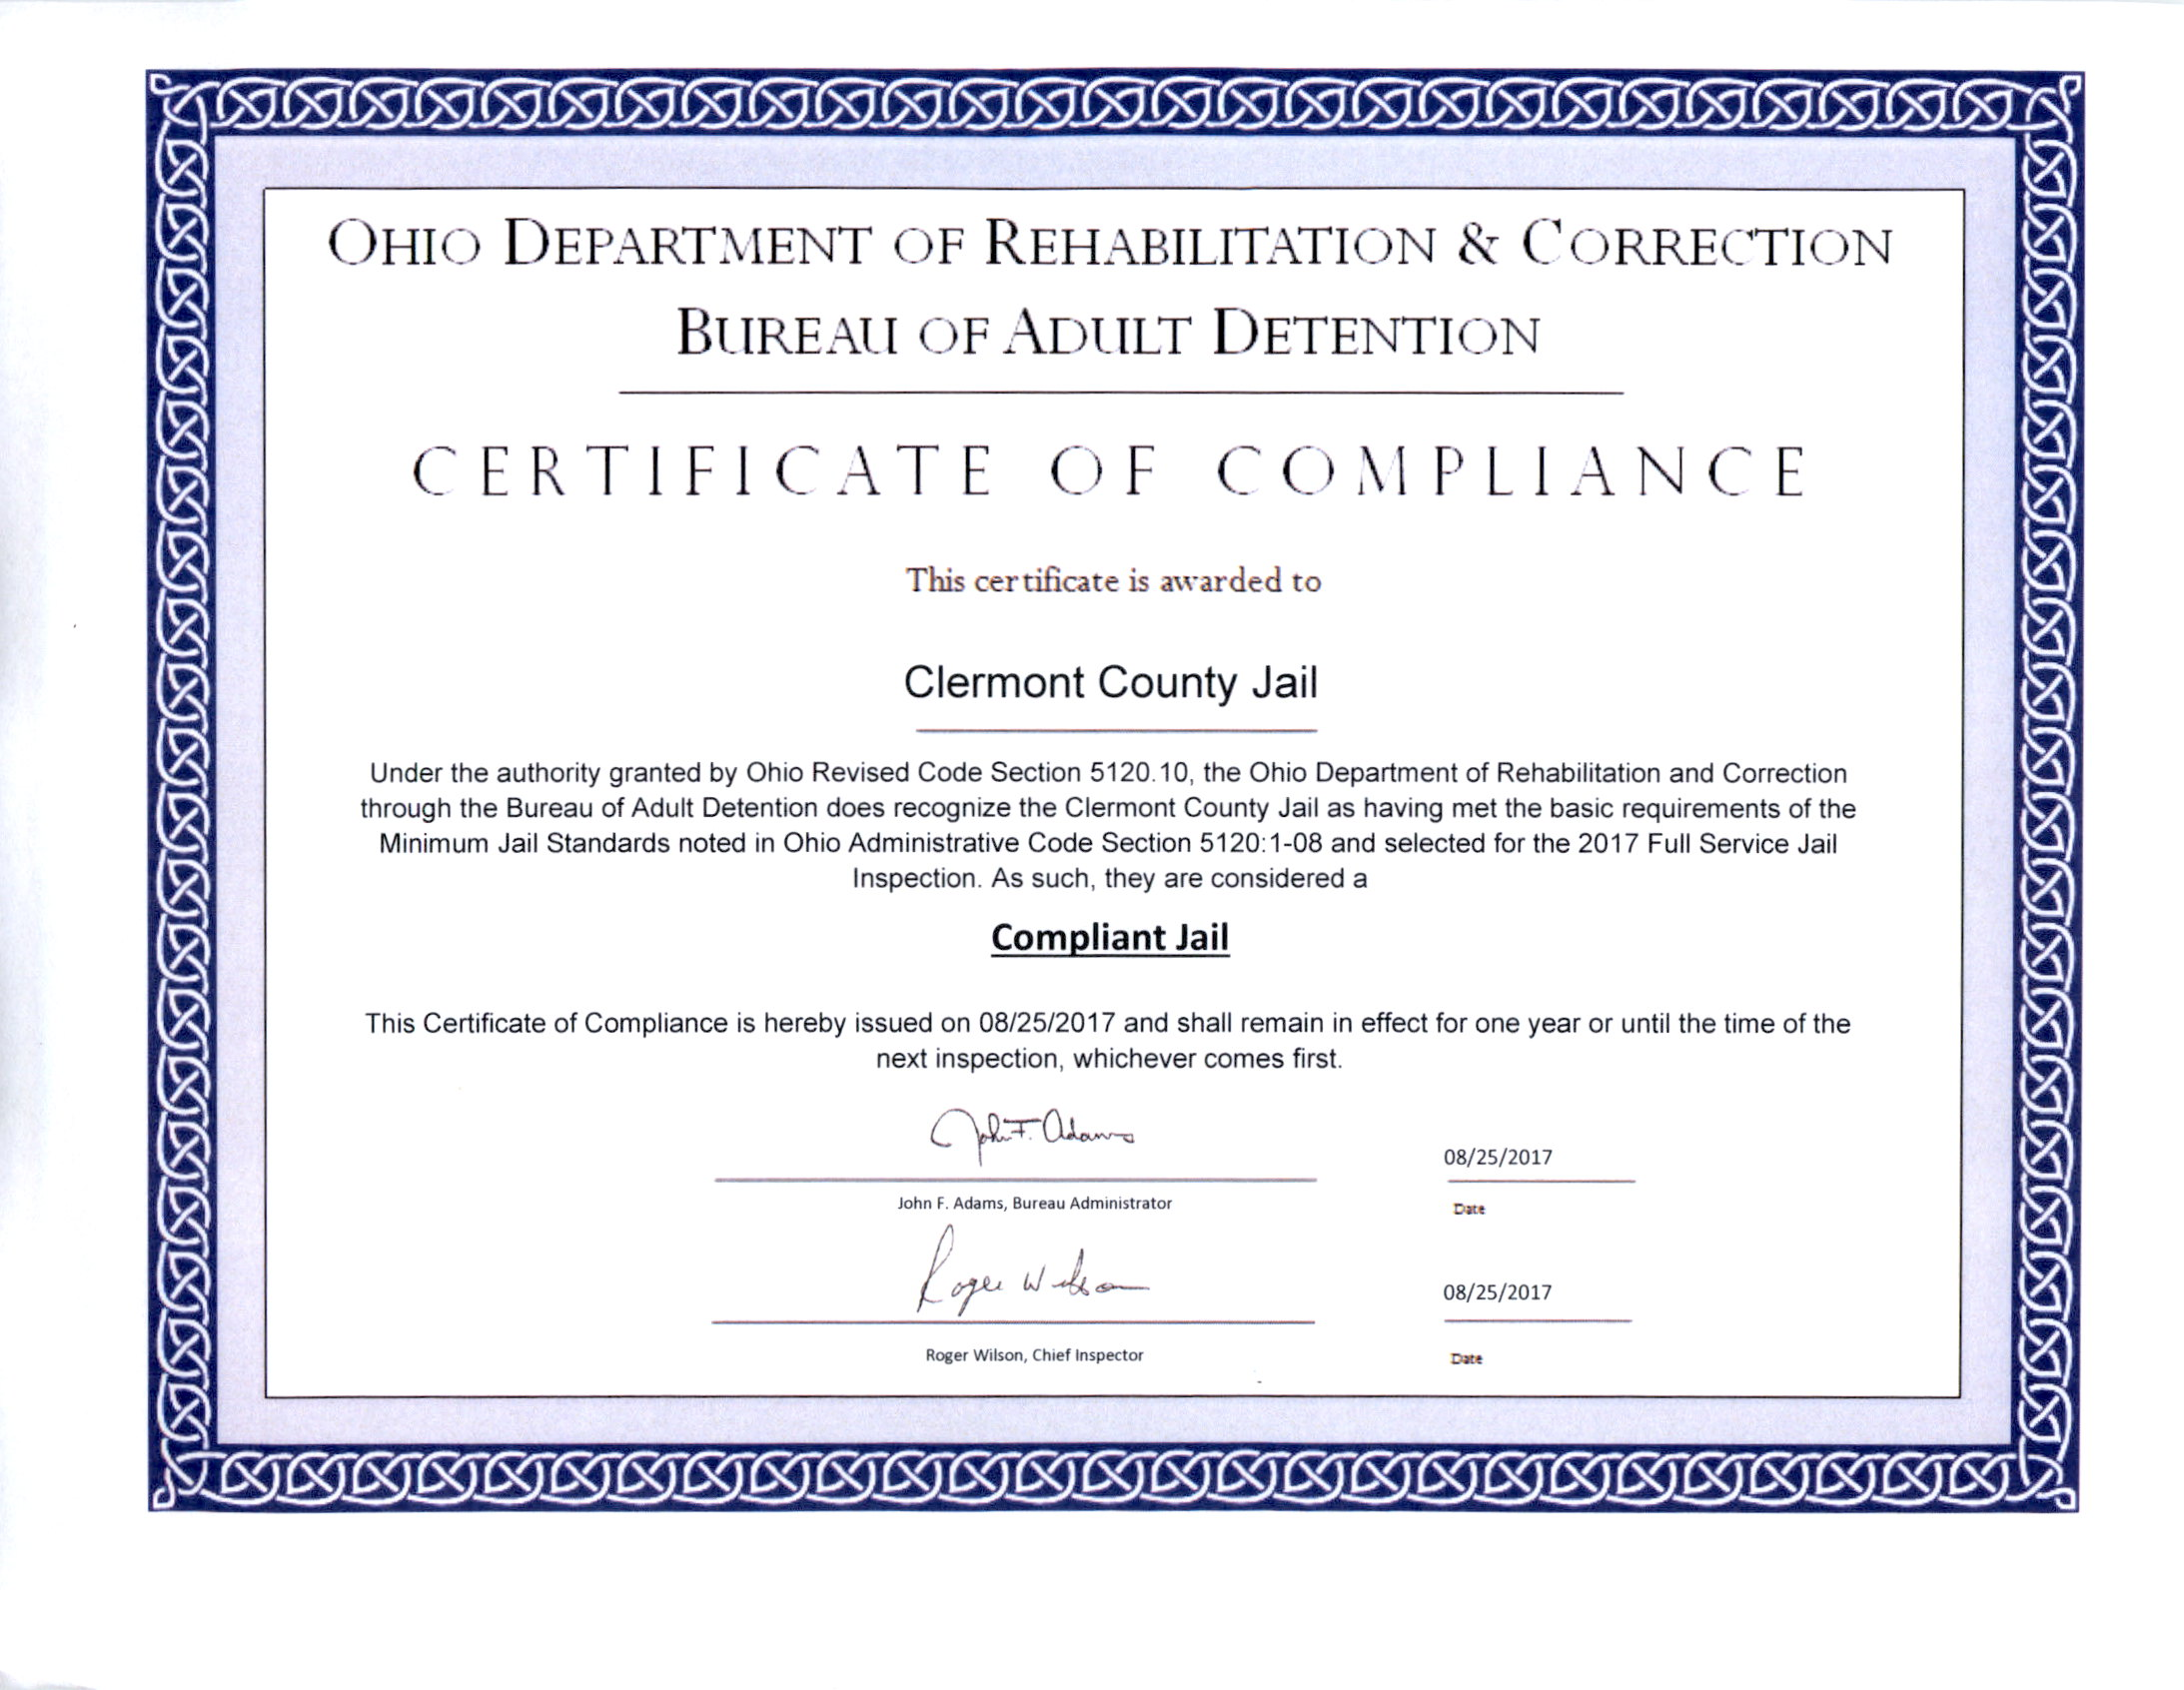 Today We Received Our Certificate Of Compliance From The Ohio